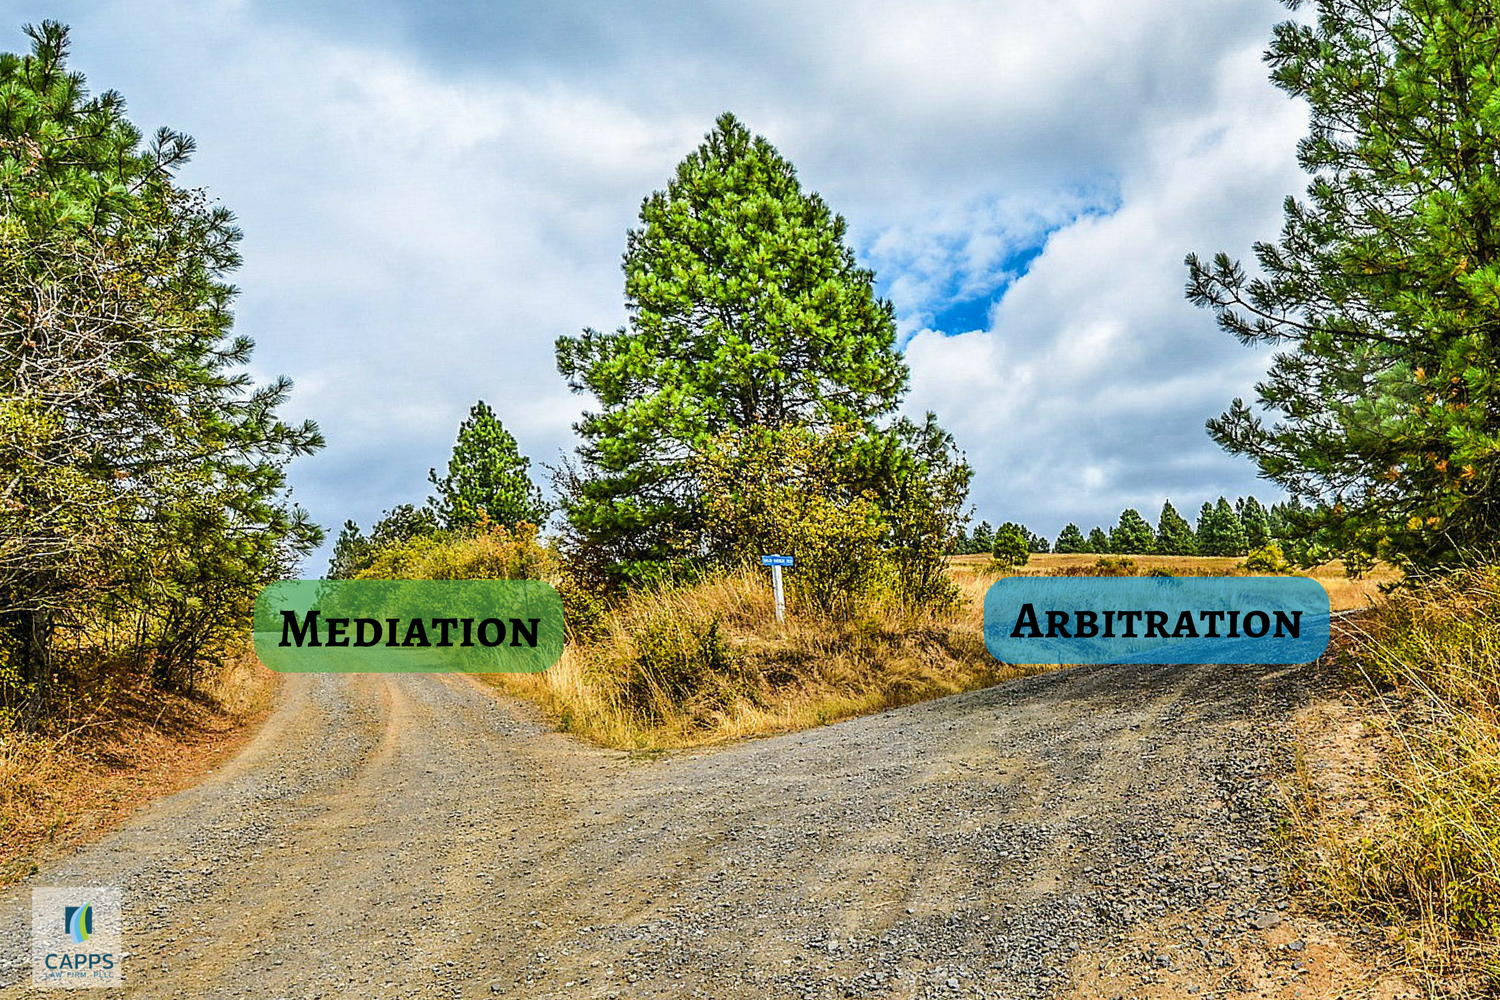 Mediation, Arbitration, fork in the road, legal decisions, austin divorce attorney, kelly J. capps, erin C. leake, mediation attorney